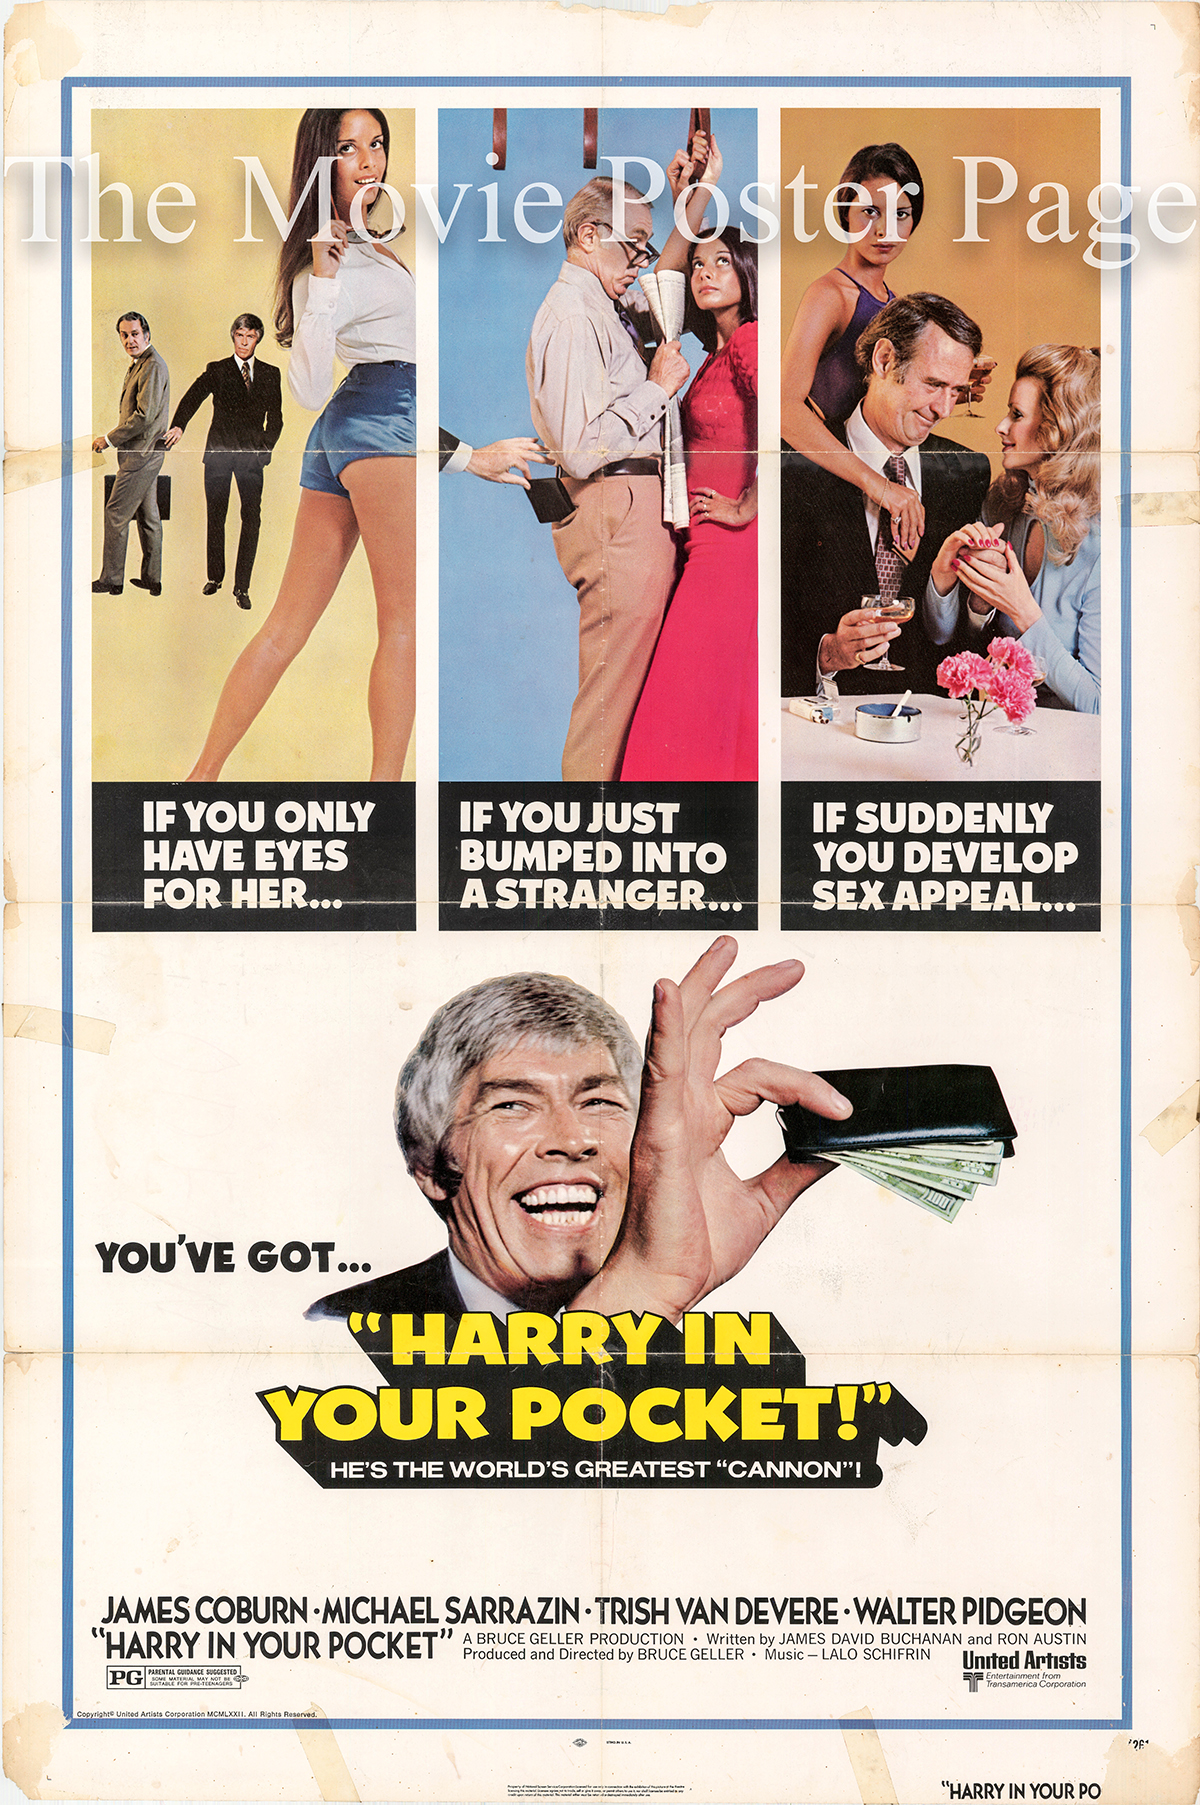 Pictured is a US one-sheet poster the 1973 Bruce Geller film Harry in Your Pocket starring James Coburn as Harry.